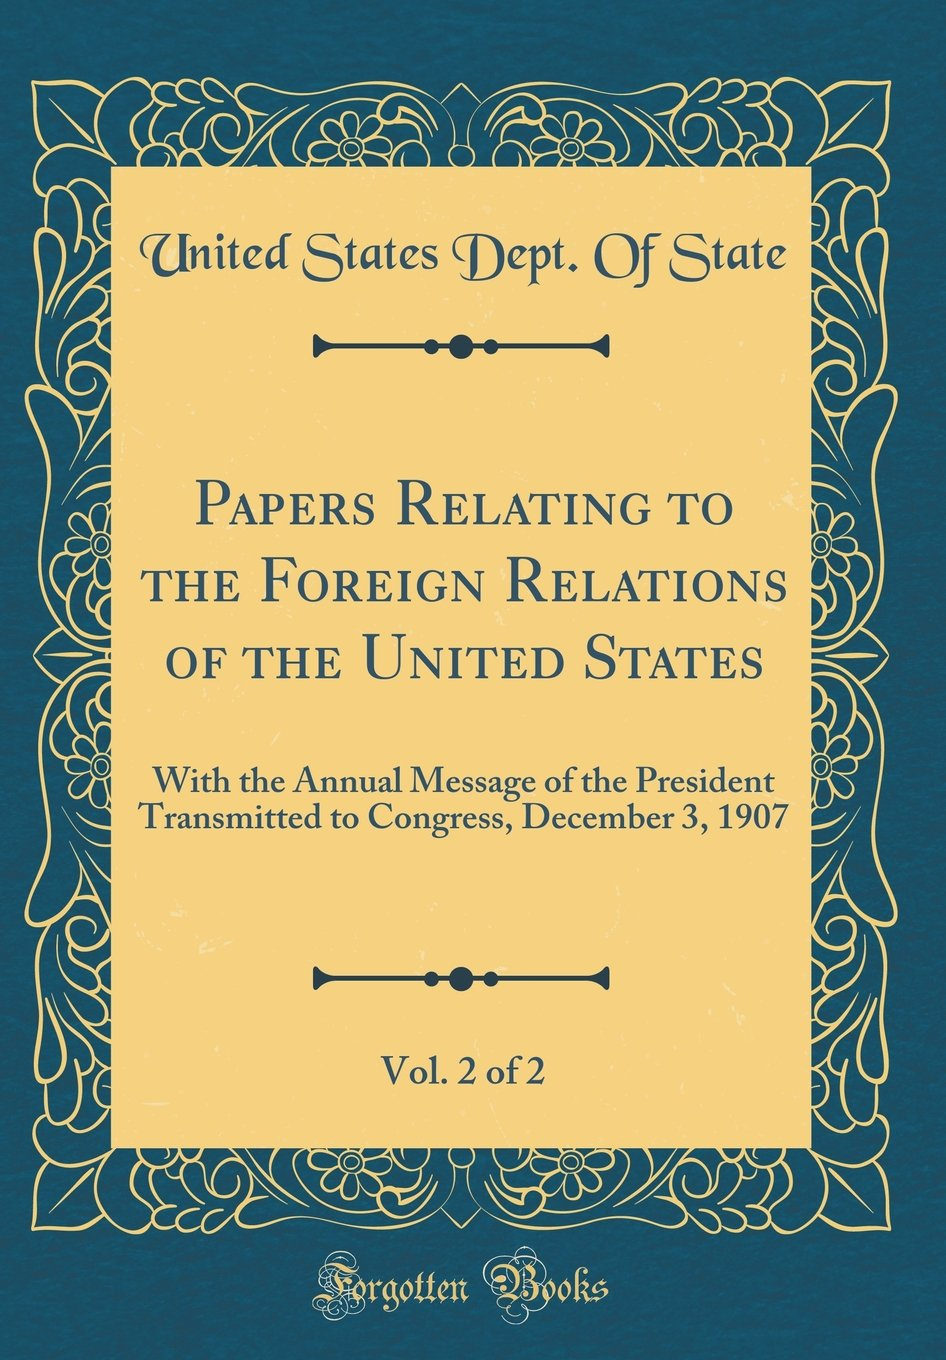 Papers Relating to the Foreign Relations of the United States, Vol. 2 of 2: With the Annual Message of the President Transmitted to Congress, December 3, 1907 (Classic Reprint) pdf epub